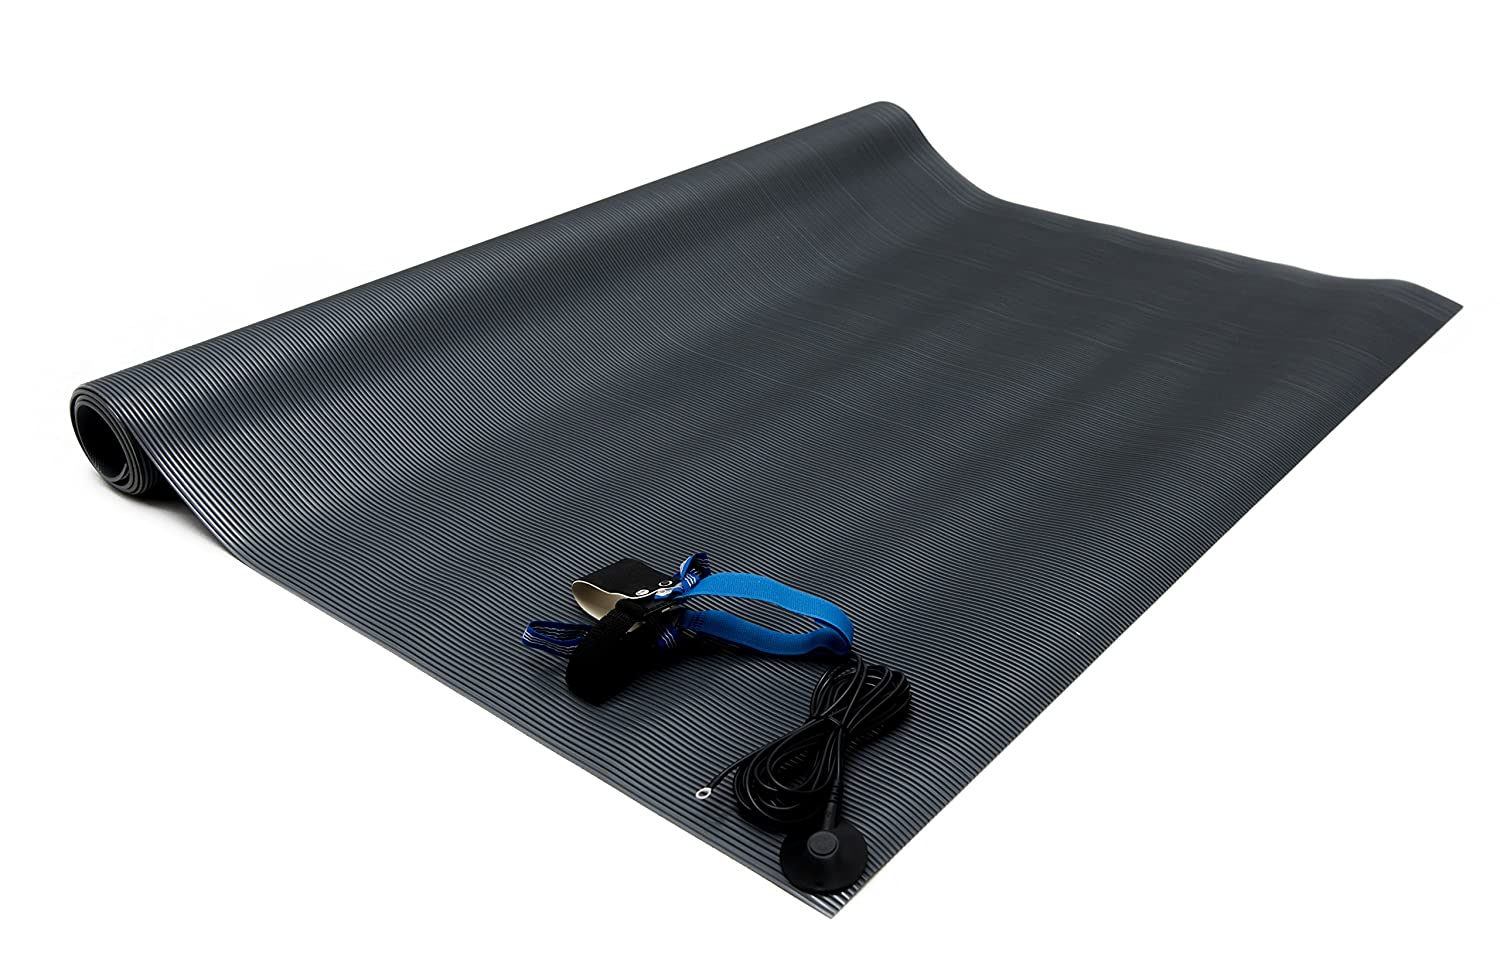 Gray Made in USA Bertech ESD PVC Floor Runner Kit with a Heel Grounder and Grounding Cord 4 Wide x 8 Long x 0.125 Thick